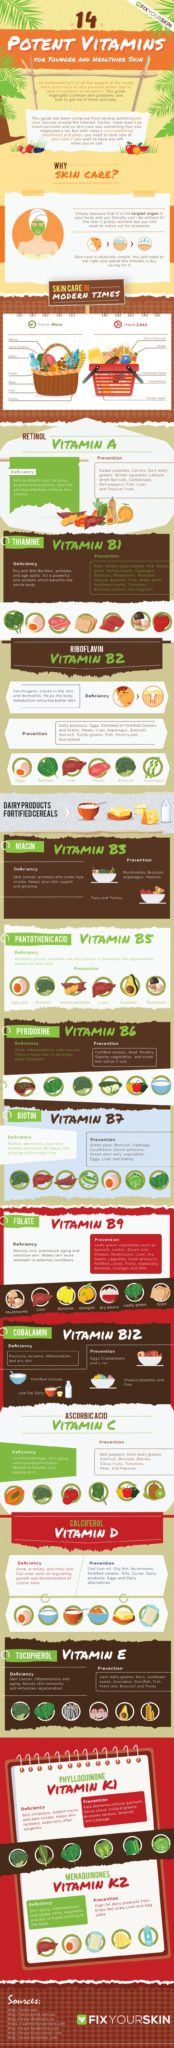 14-potent-vitamins-for-younger-and-healthier-skin